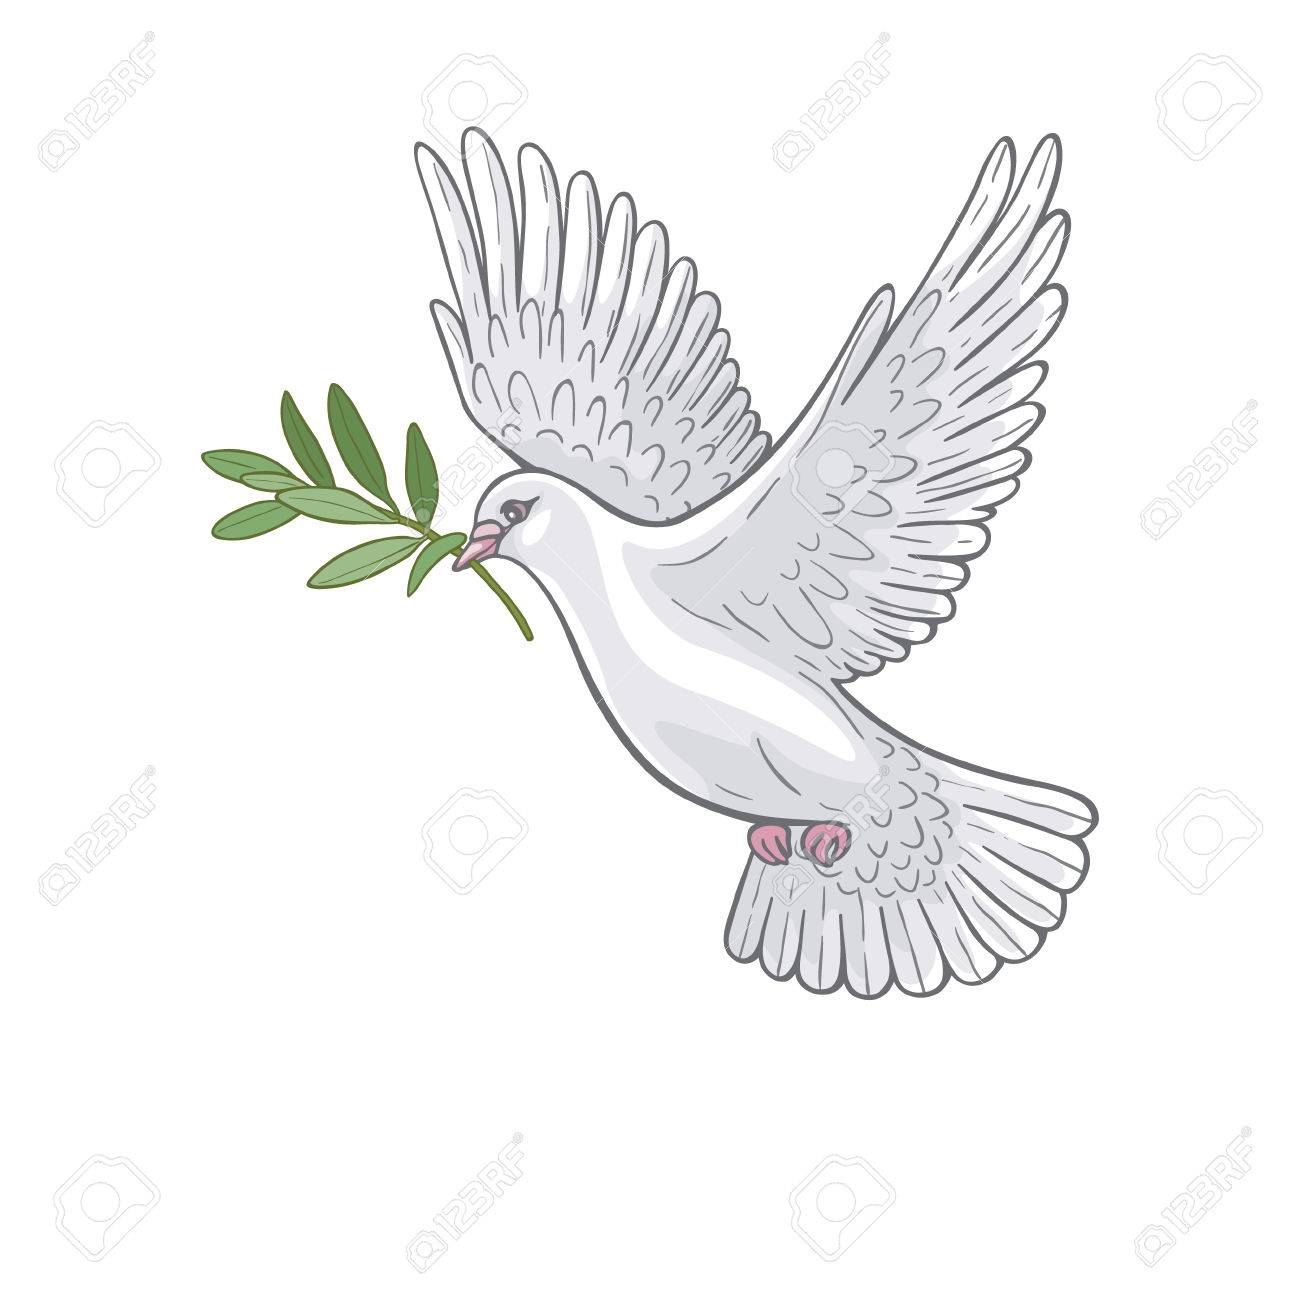 Hand Drawn White Flying Dove With Olive Branch Royalty Free Cliparts Vectors And Stock Illustration Image 60230748